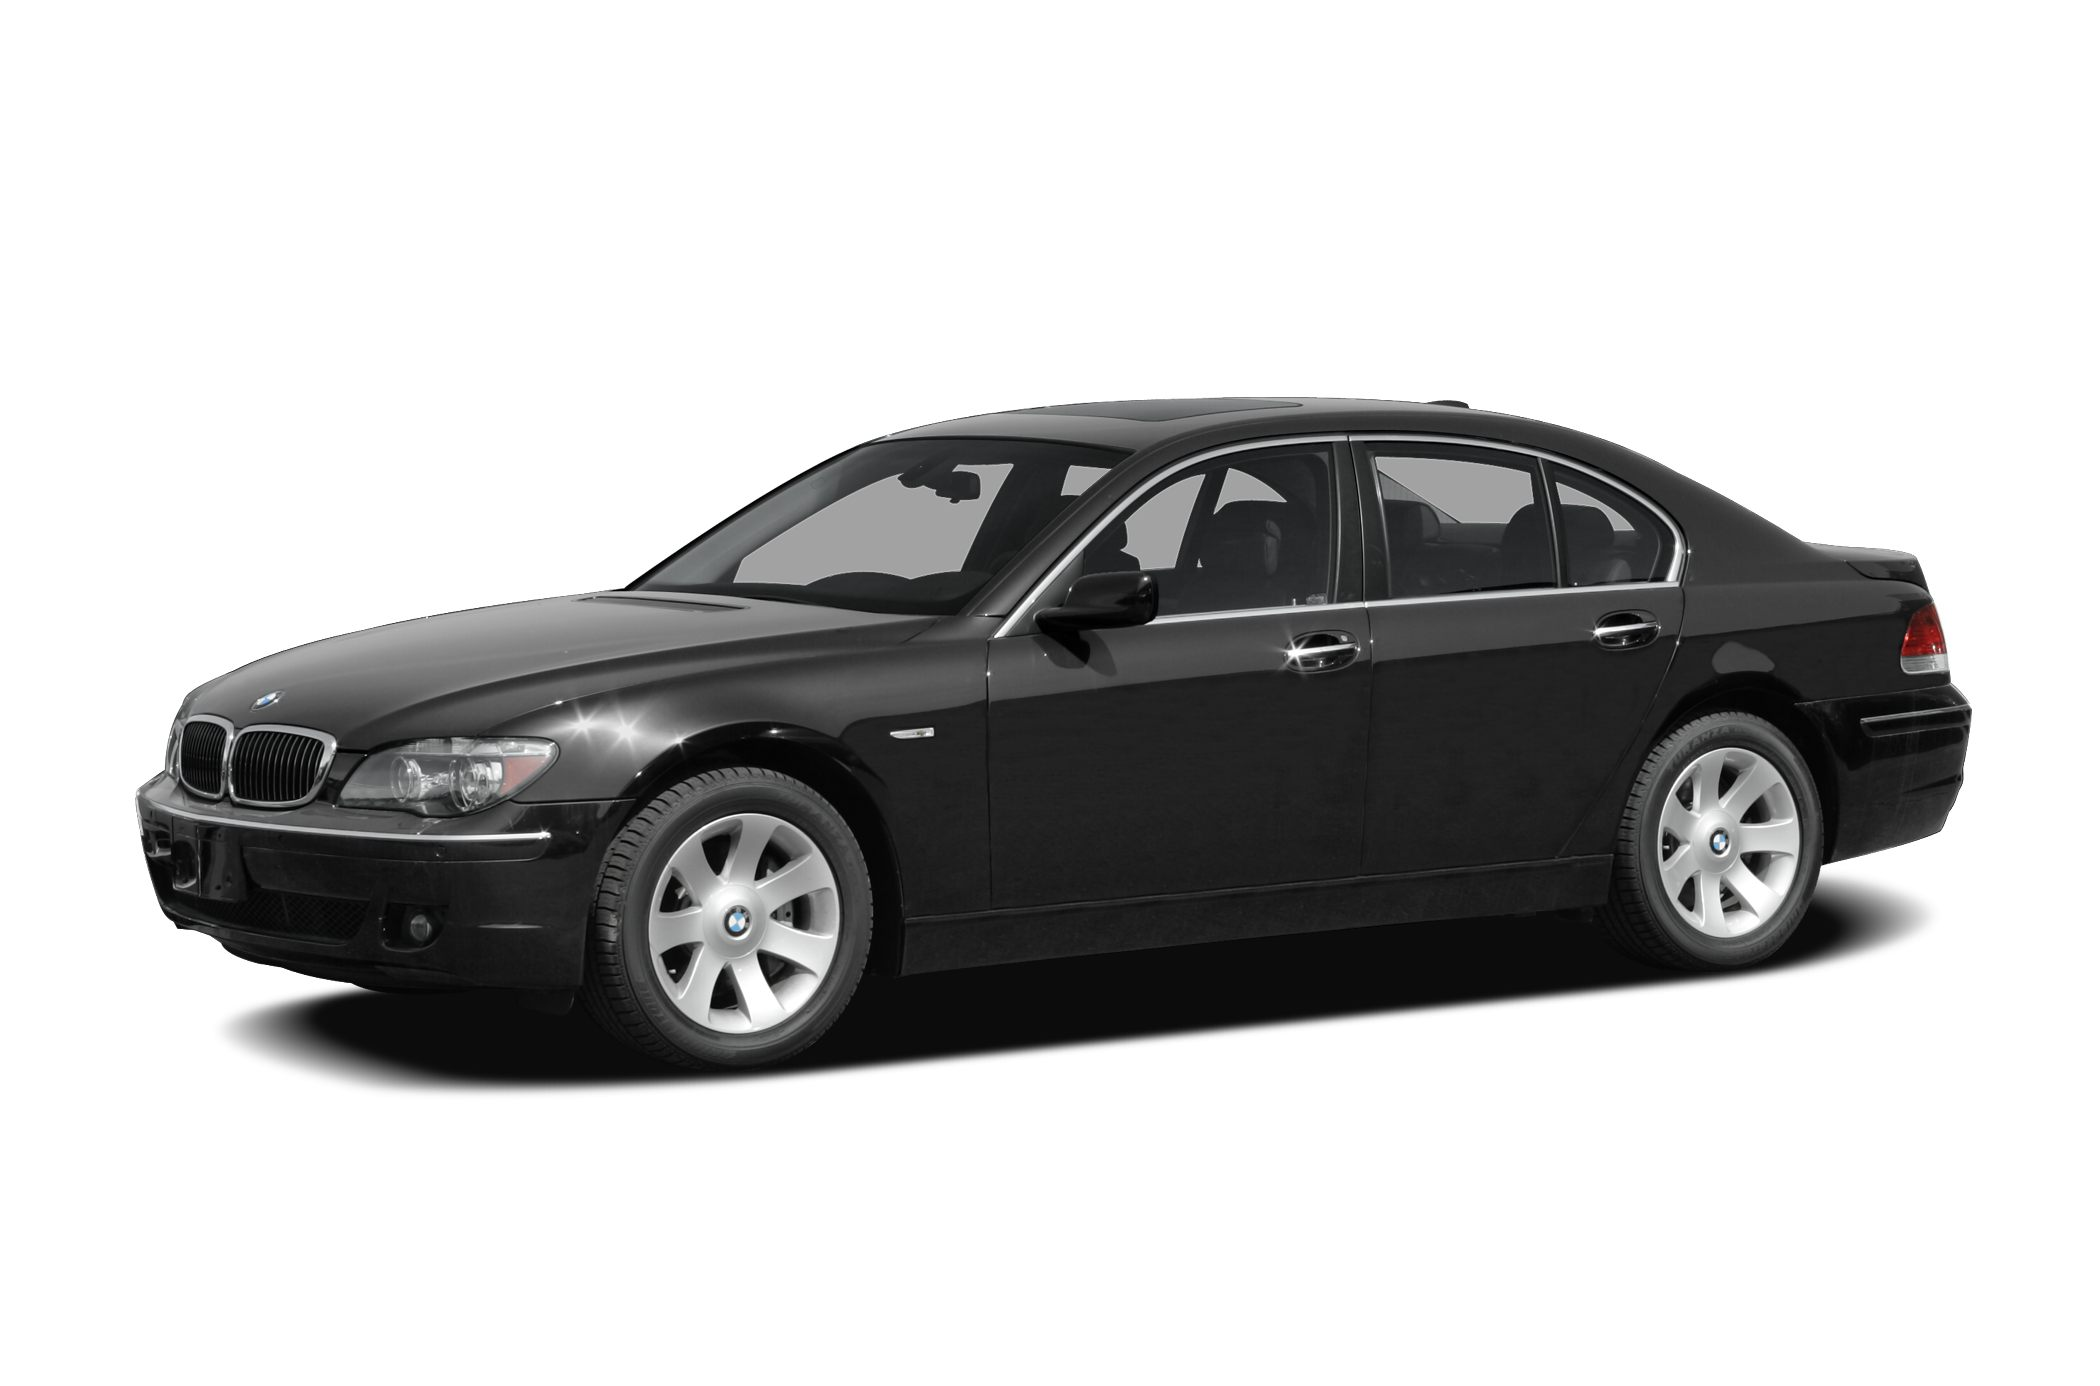 2008 BMW 750 Specs and Prices